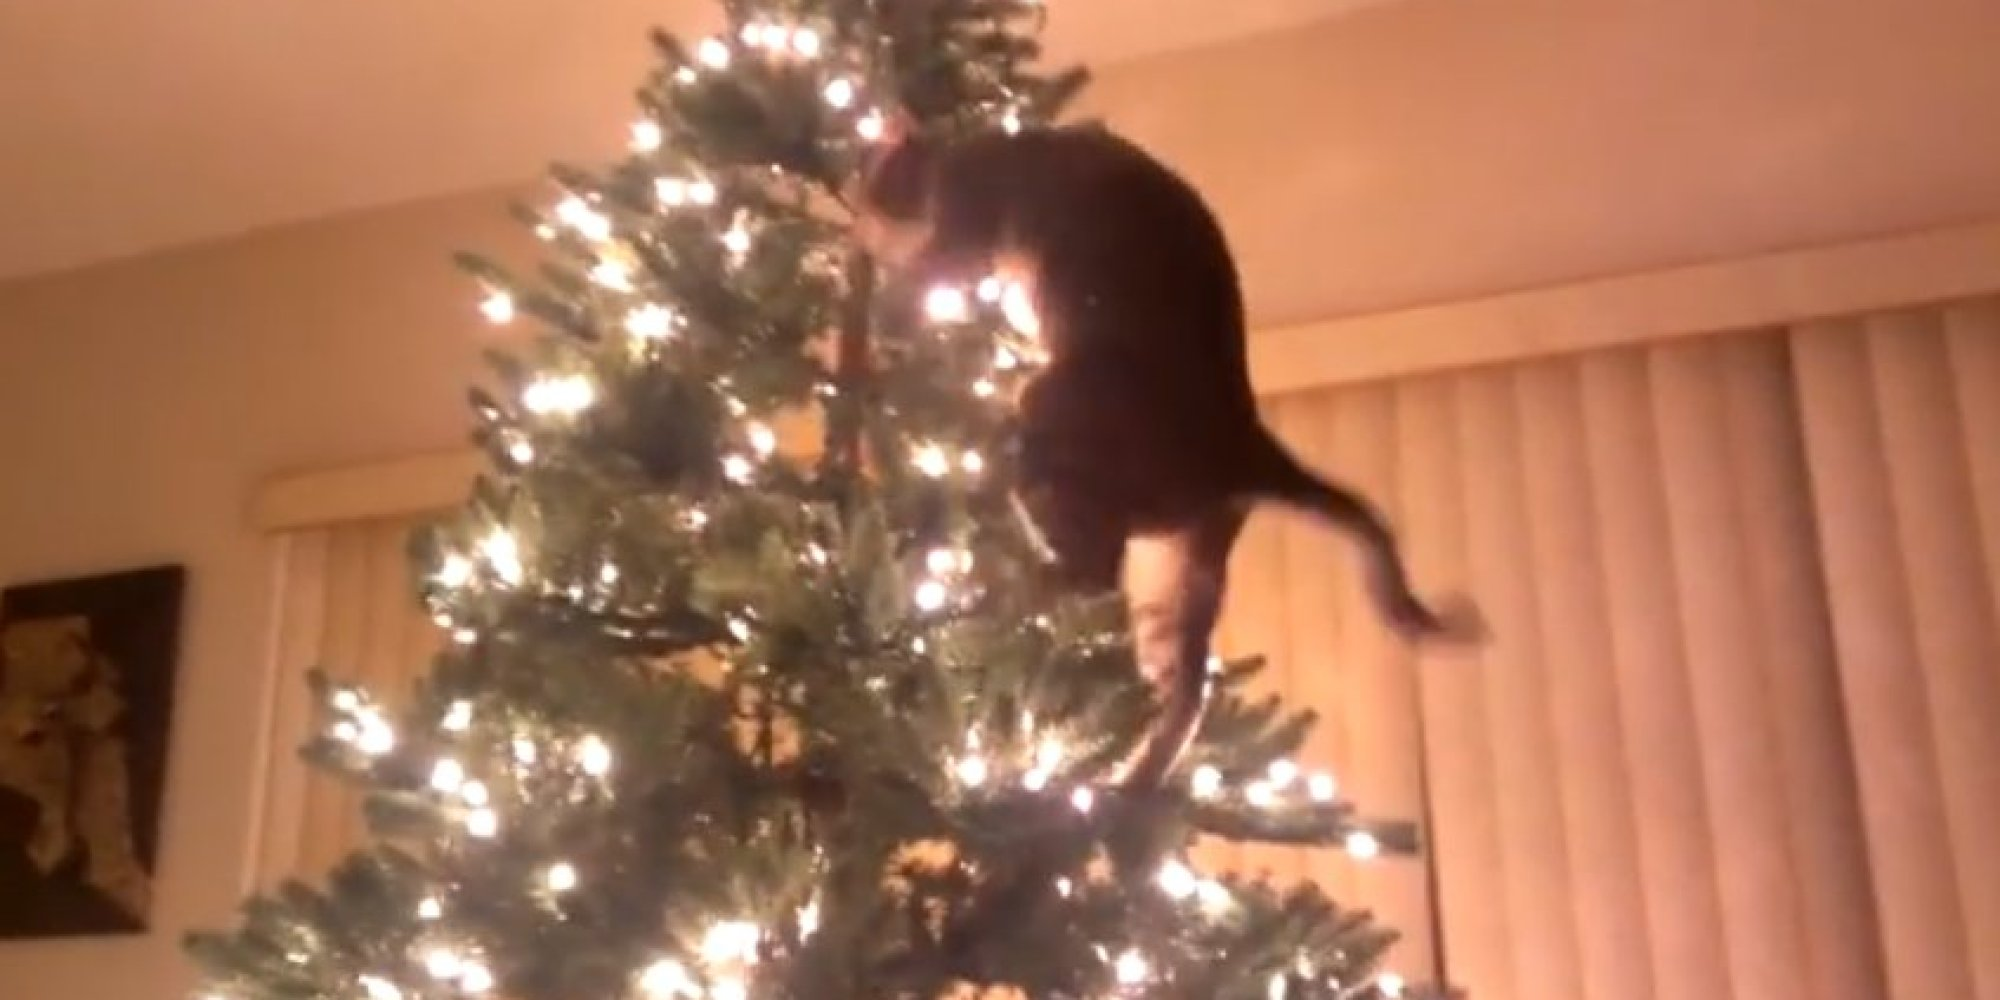 Jerk Cats Return, This Time To Ruin Christmas